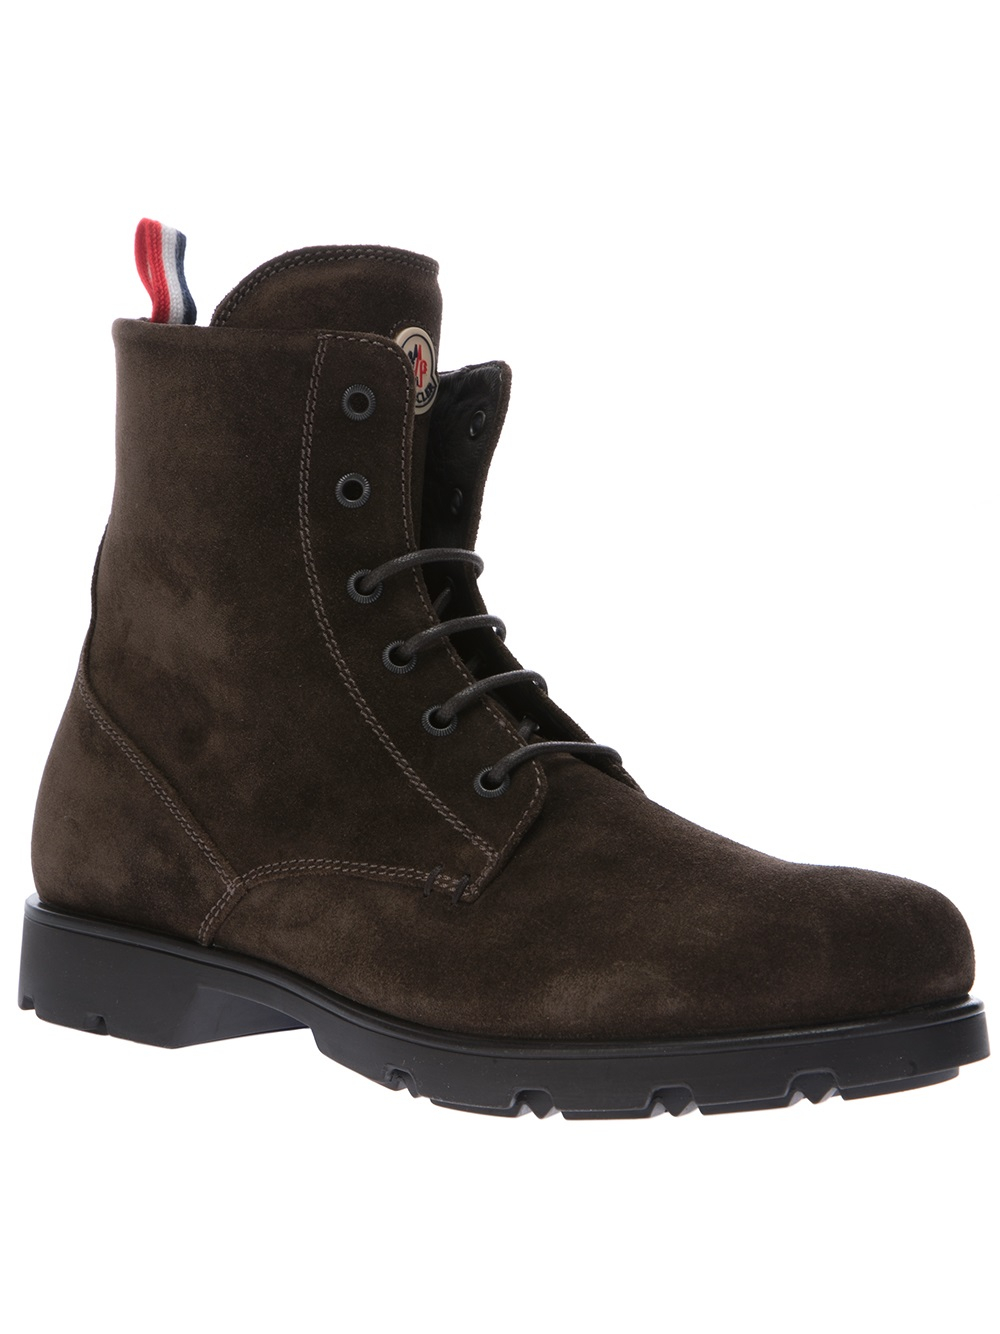 moncler vancouver boots in brown for men lyst